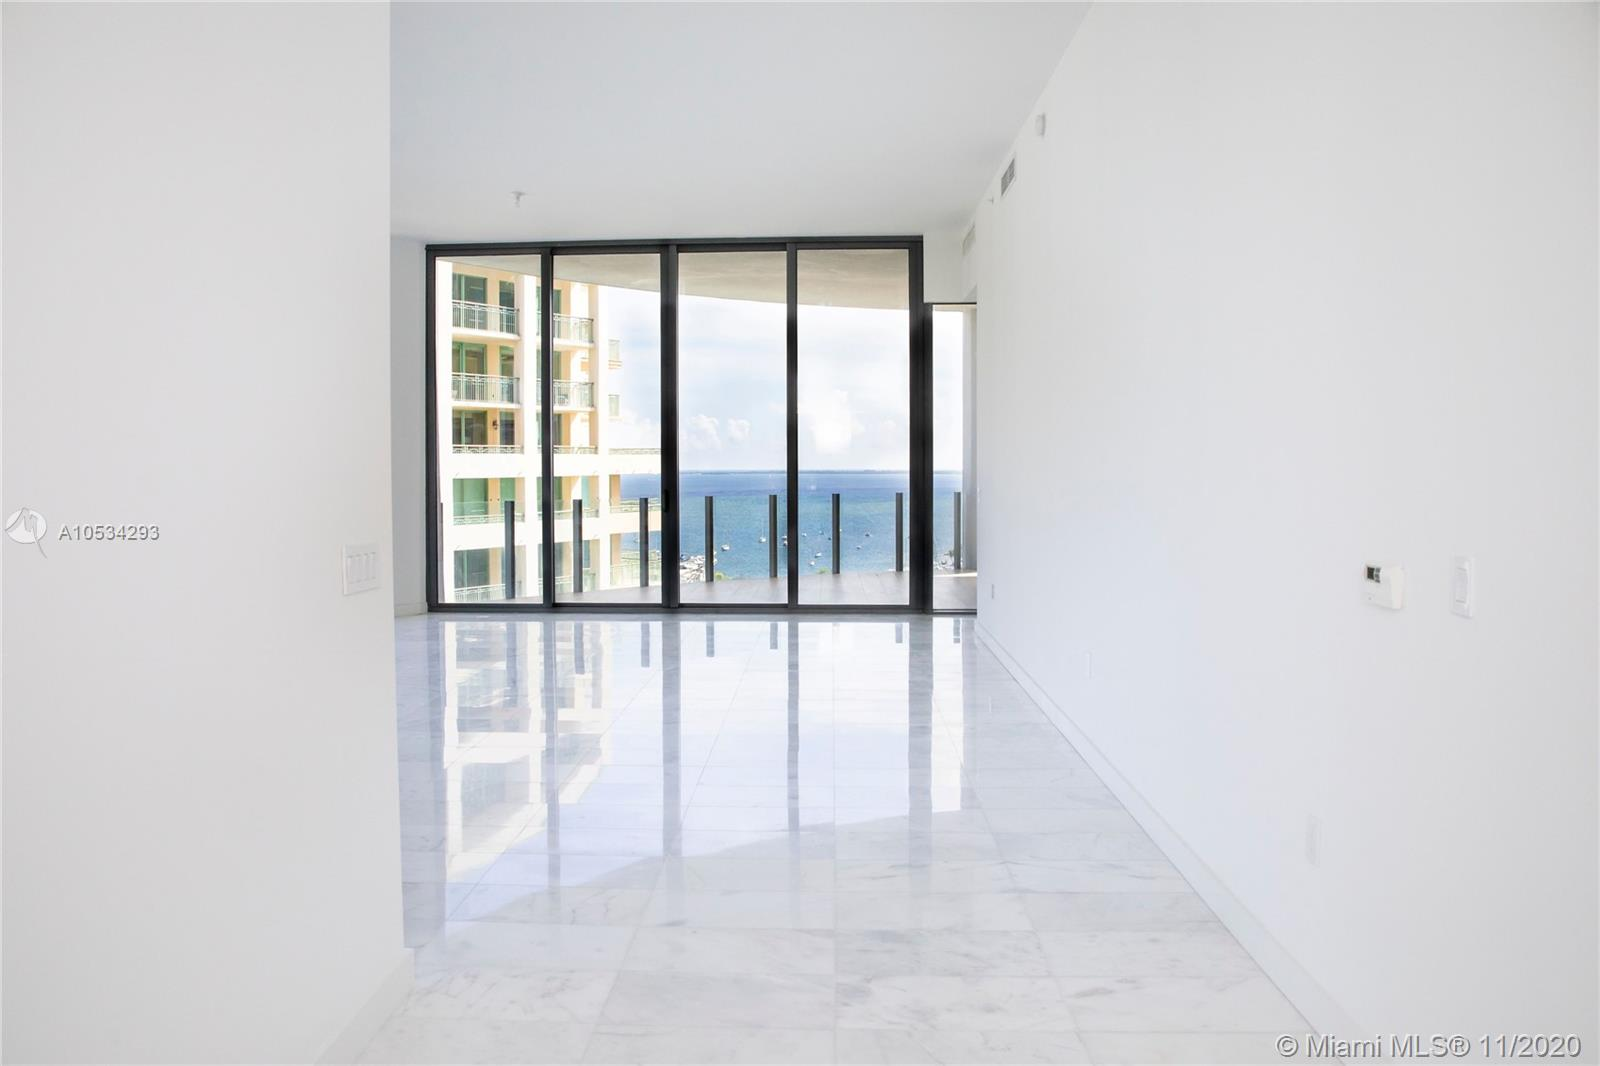 "THE MOST PRESTIGIOUS AND EXQUISITE BUILDING IN SOUTH FLORIDA ""TWO PARK GROVE"". 3 Bedrooms, 3 Full bathrooms and a powder room. Breathtaking Bay View from Master and Social Areas with a majestic terrace on the 17th floor. City Views from Guest Rooms, both are en-suite bedrooms. Bathrooms and Kitchen Mastery Design By William Sofield,  Sub-zero and Wolf appliances.  Open concept kitchen-Dining-Living-Terrace. State of the Art amenities, like a luxury resort, roof top pool, ground pool, cabanas, gym, sauna, steam room, children's play areas. Wine tasting room with private wine storage, 5 acres of breathtaking gardens design By Enzo Enea. Come and own a life of  Luxury and Prestige."